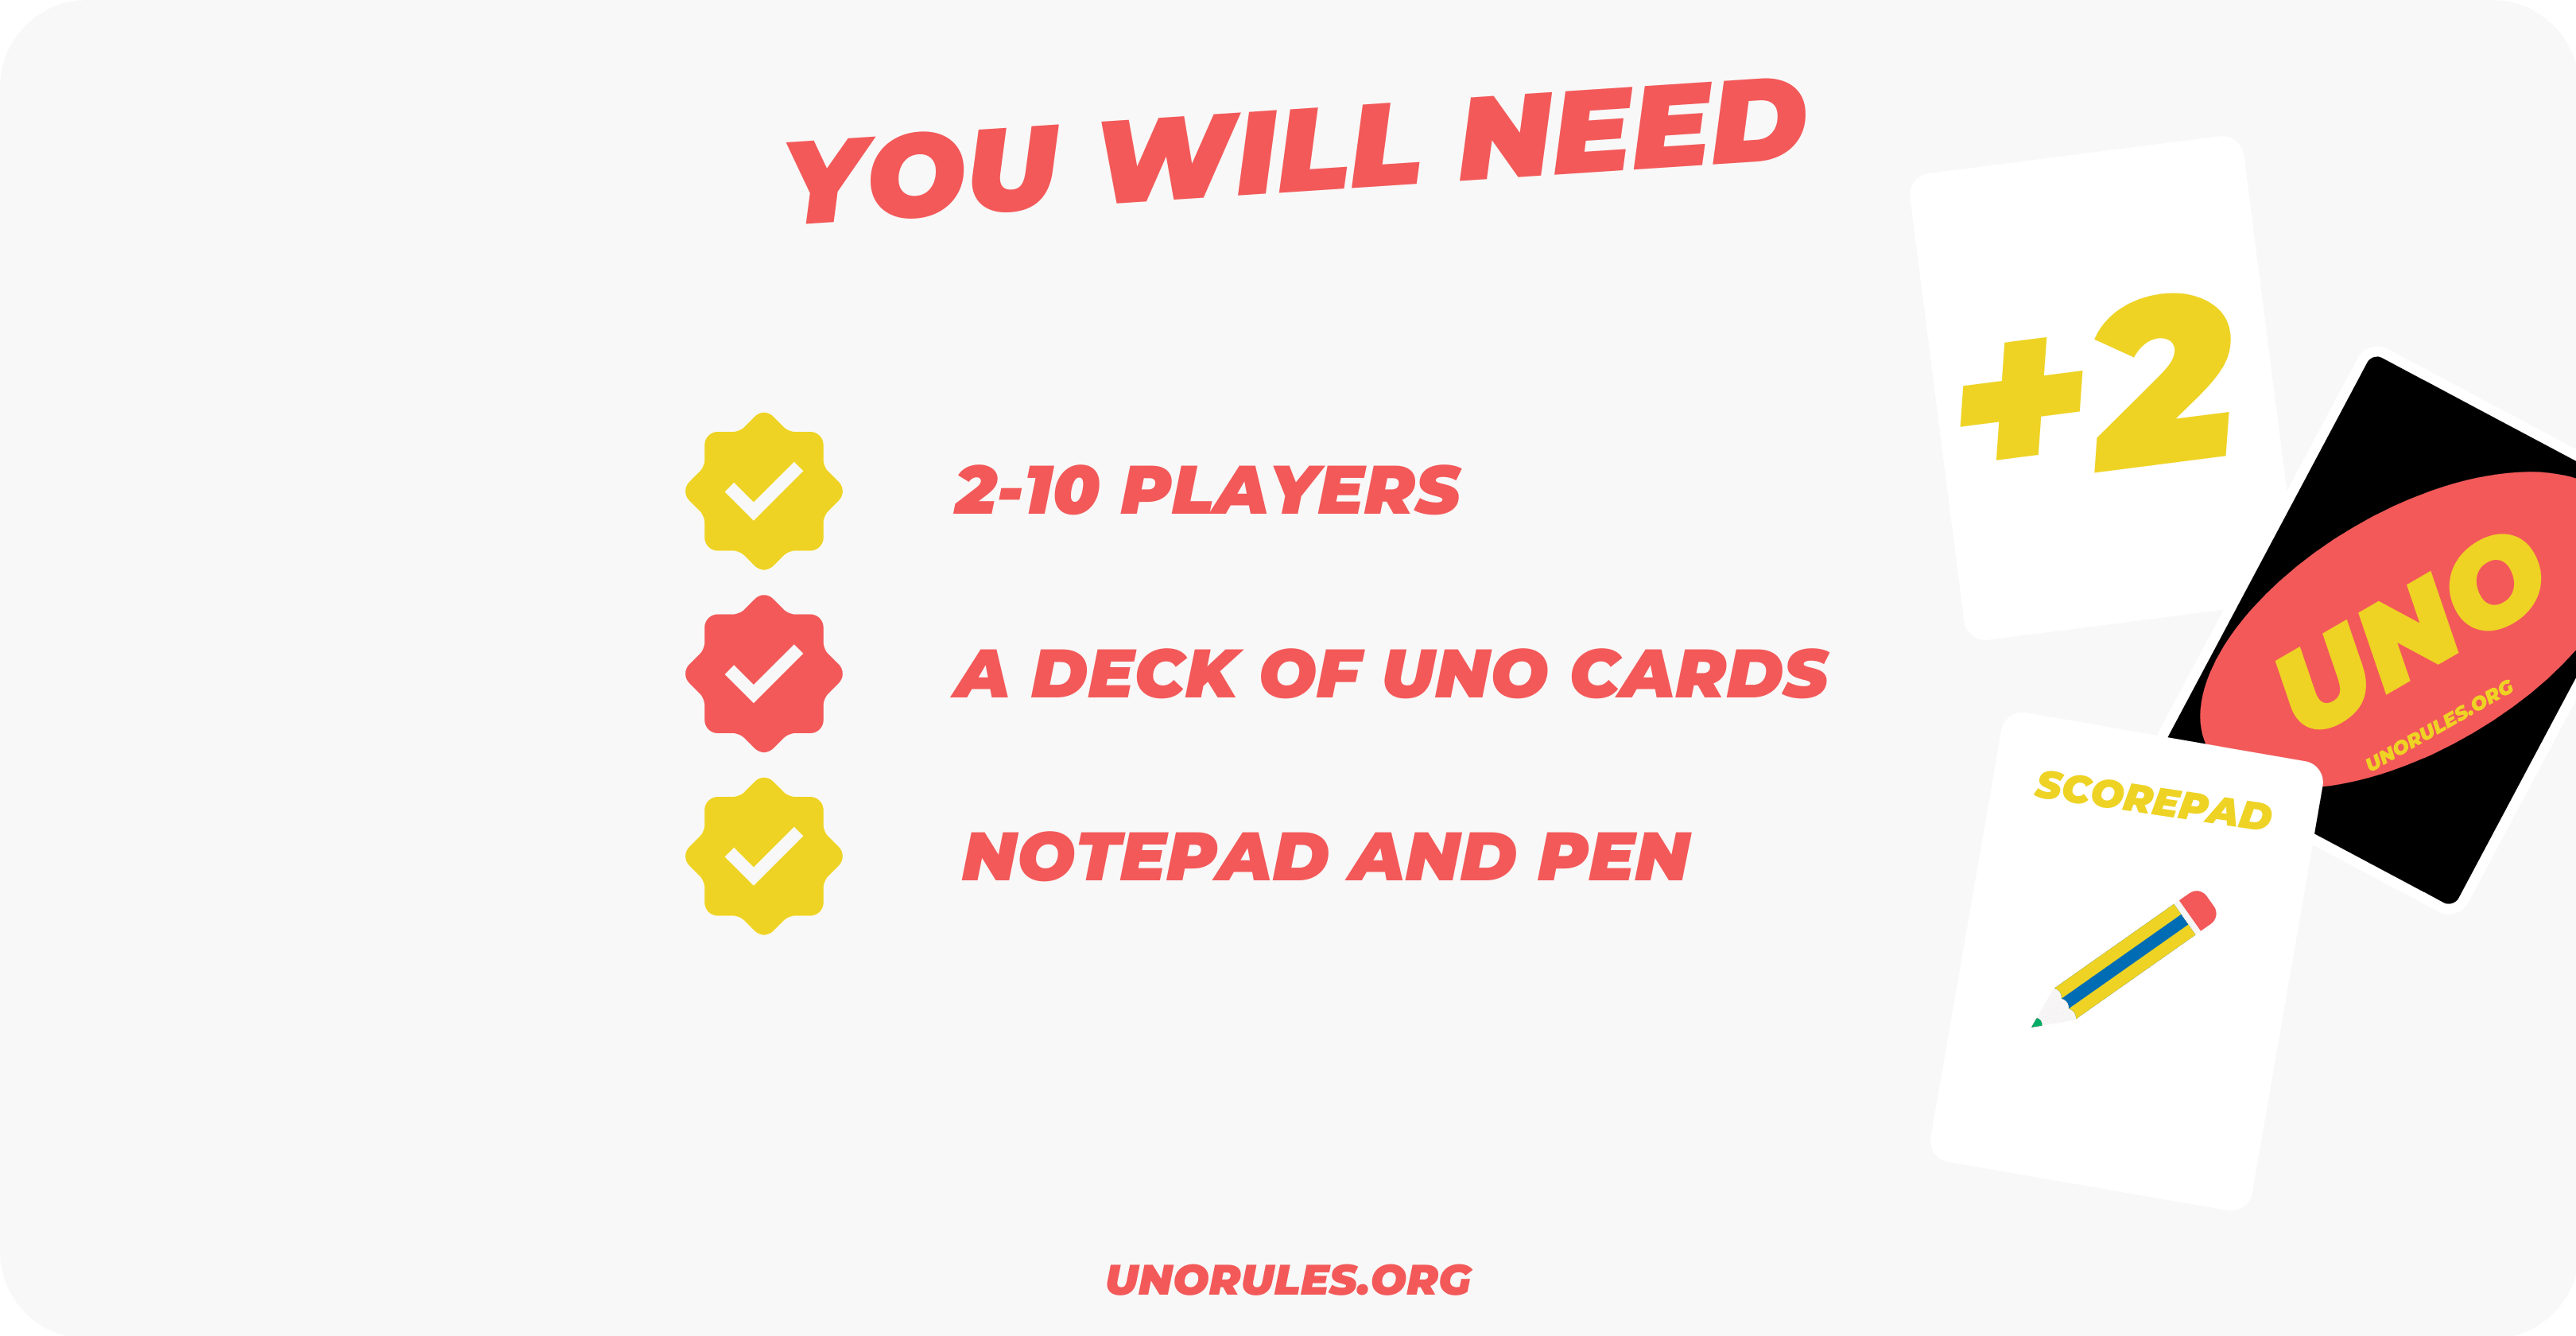 Playing Uno - What do you need